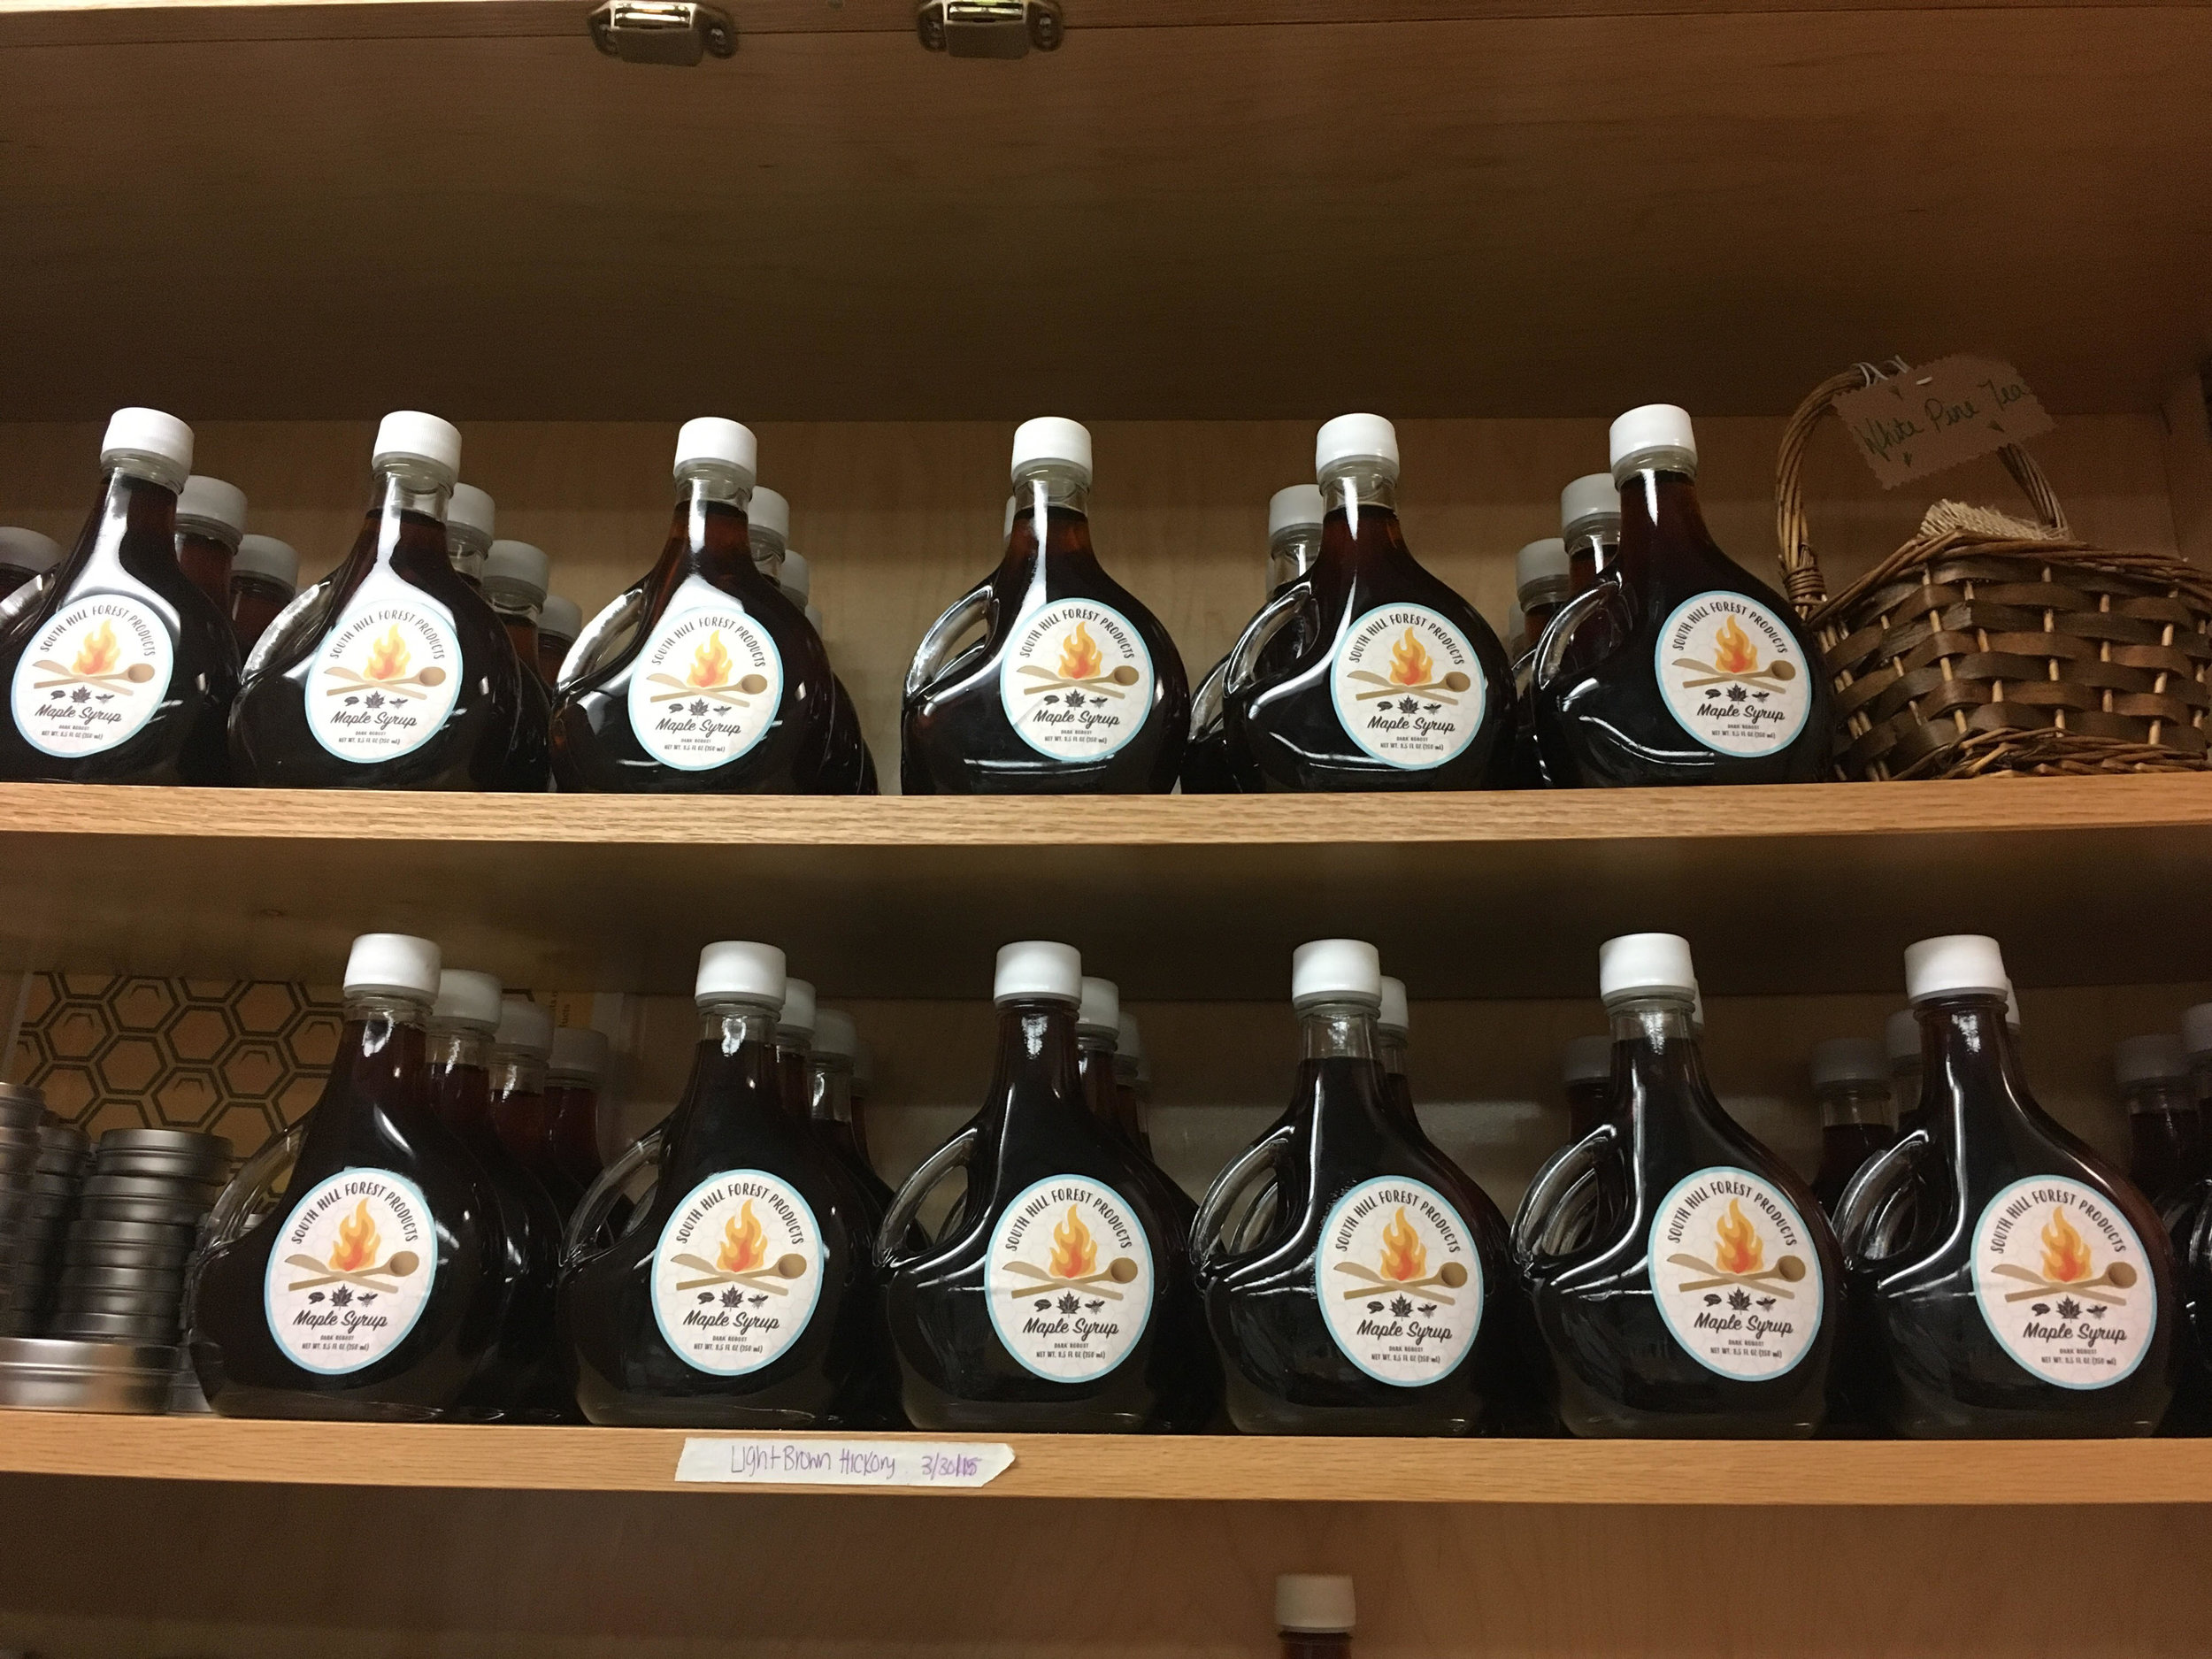 Just a small sampling of all the syrup we've been able to produce this year!